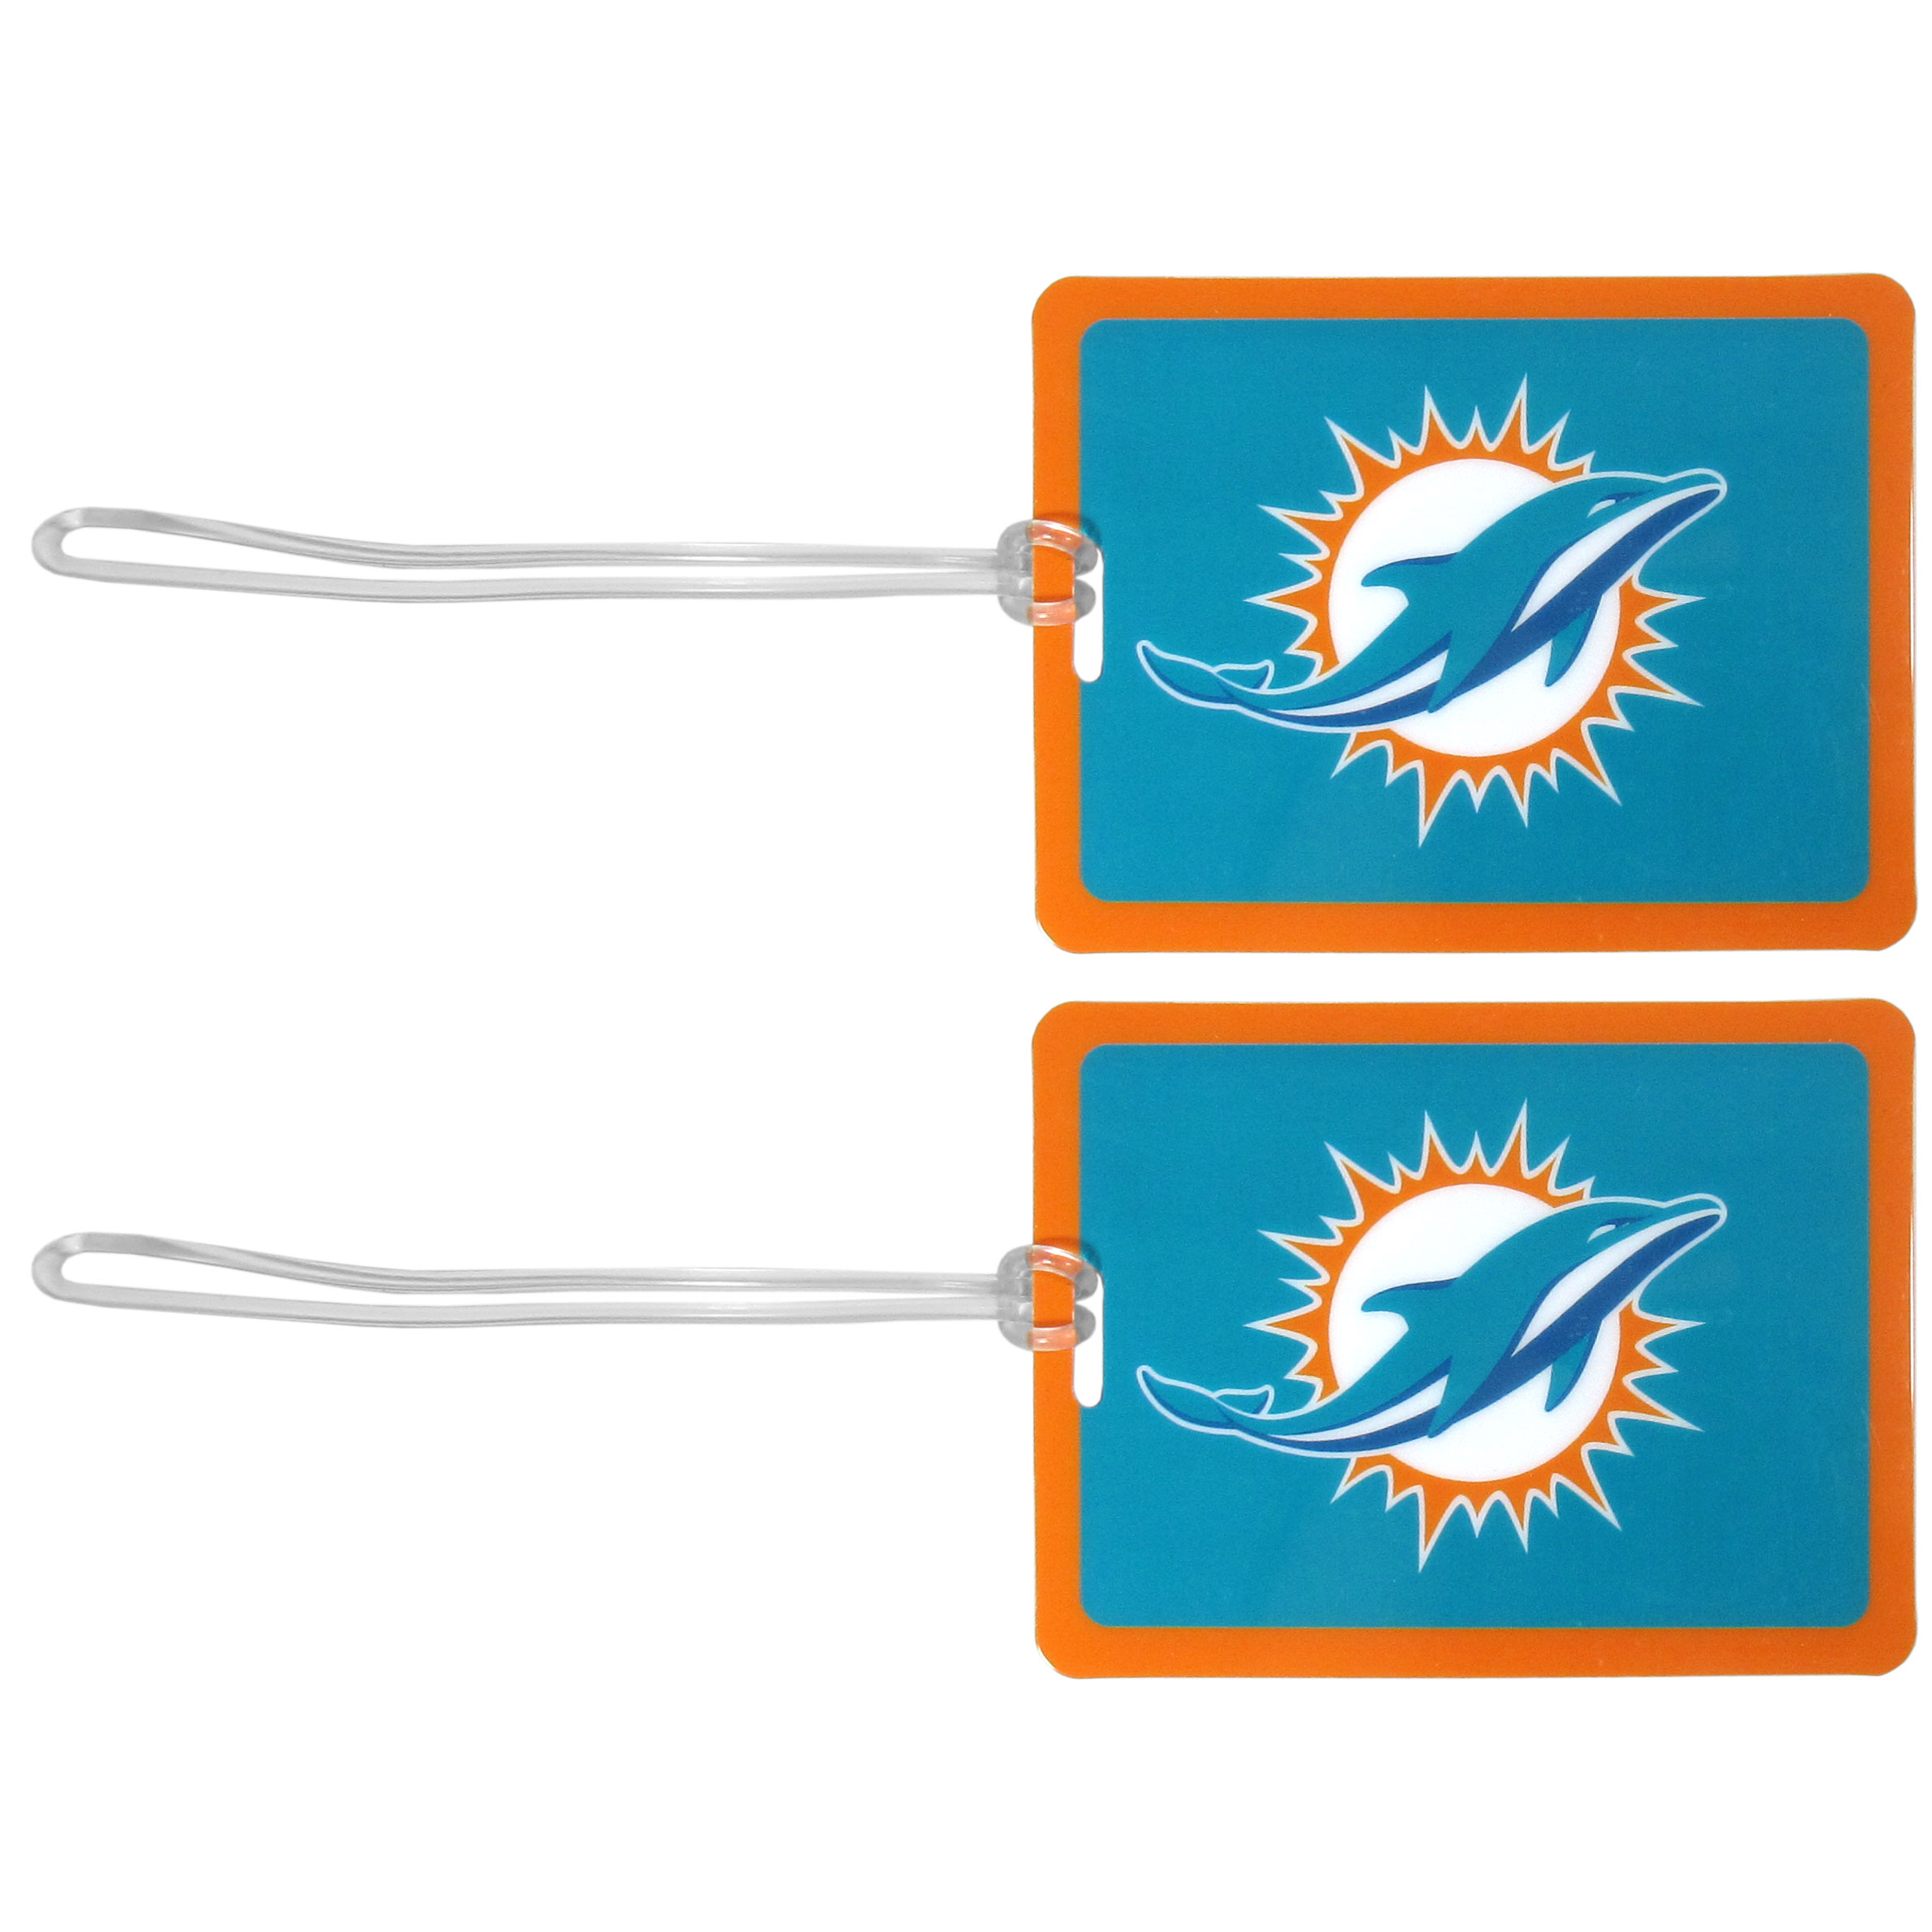 Miami Dolphins Vinyl Luggage Tag, 2pk - Tired of trying to spot your suitcase or bag in a sea of luggage? Try our large and colorful Miami Dolphins luggage tags. The tag is 4x3 inches and has a 5 inch cord to attach it easily to your bags, backpacks or luggage. The front of the tag features the team logo in a bright, team colored background and you can write you name, address and phone number on the back of the tag.